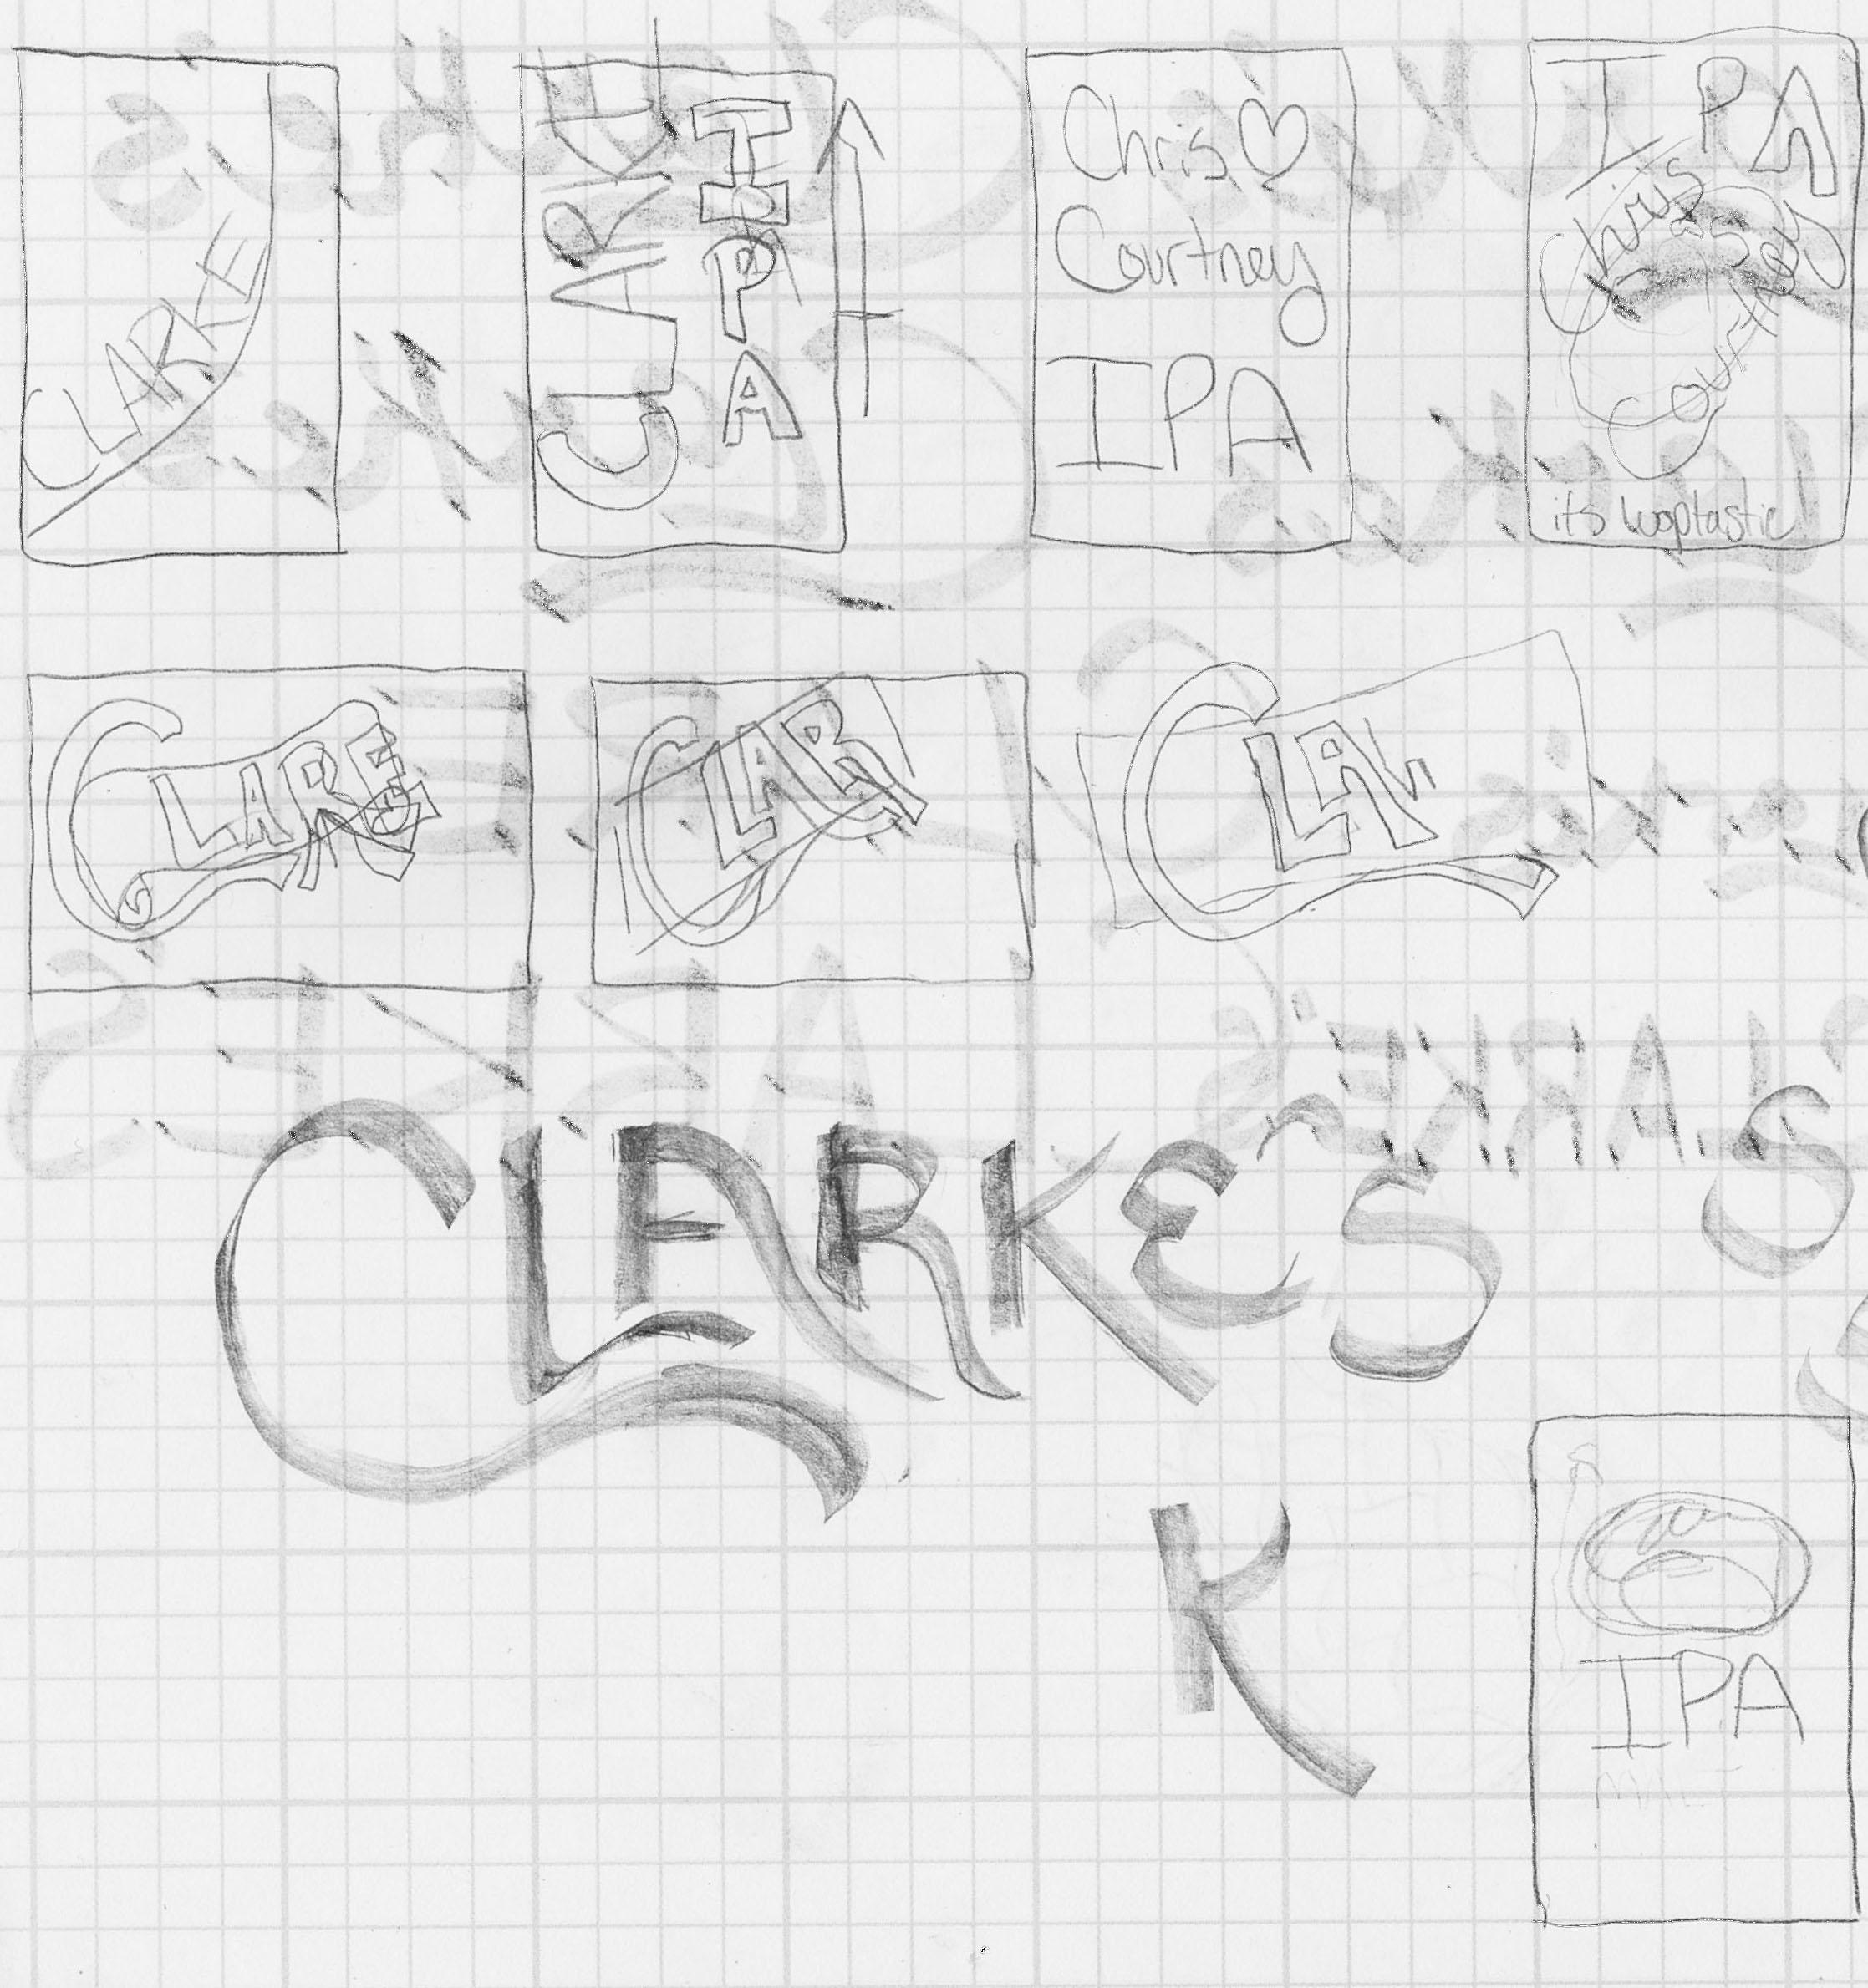 Clarke's Beer - image 2 - student project